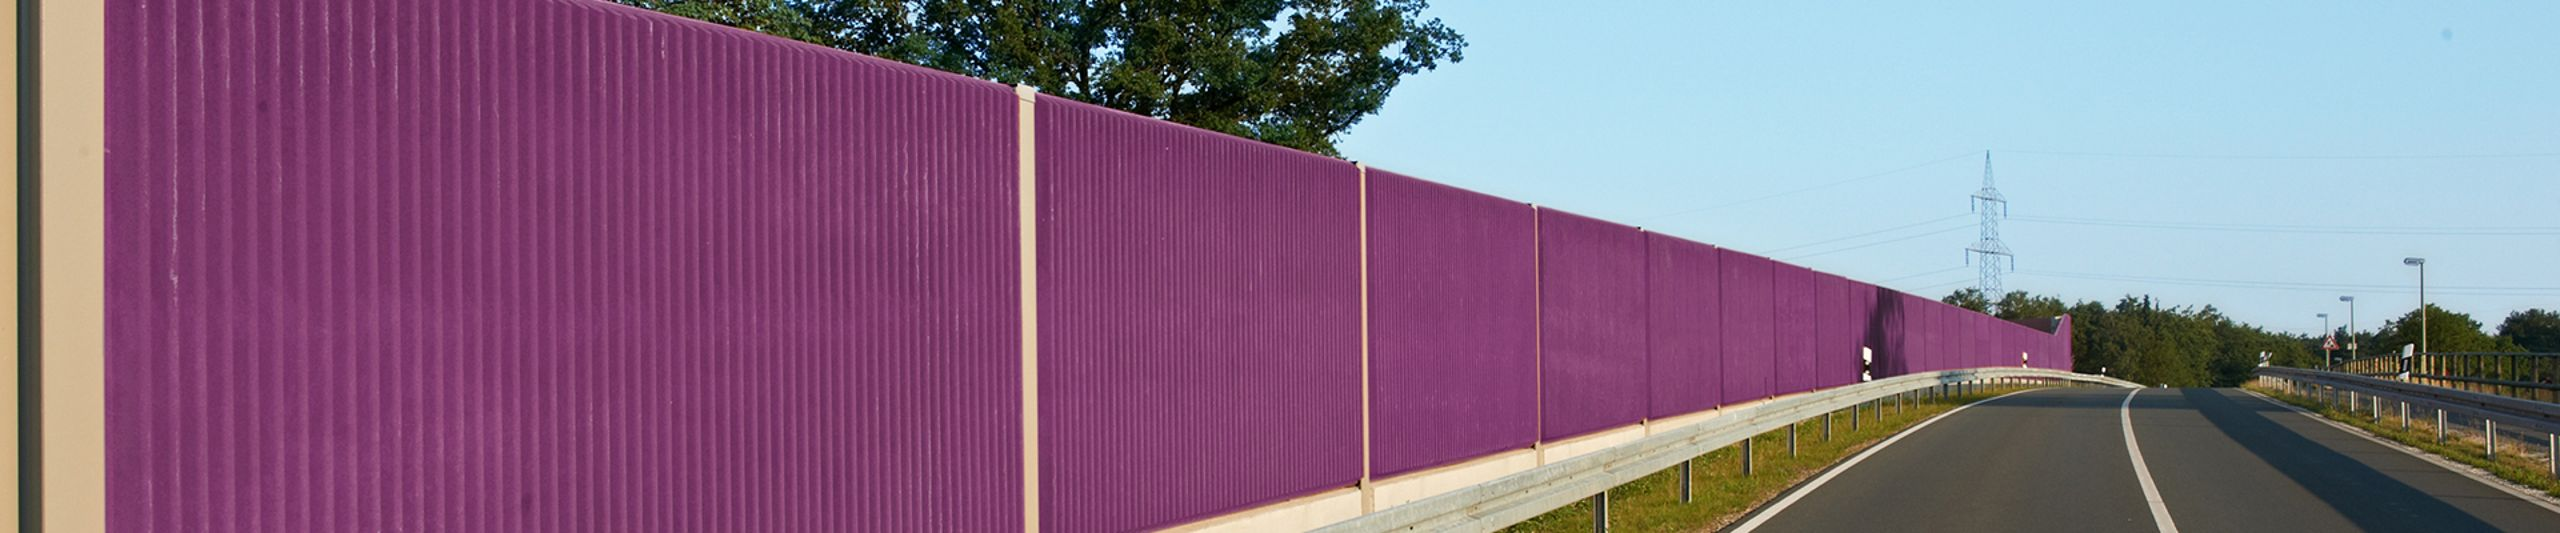 Noise protection wall construction from precast concrete